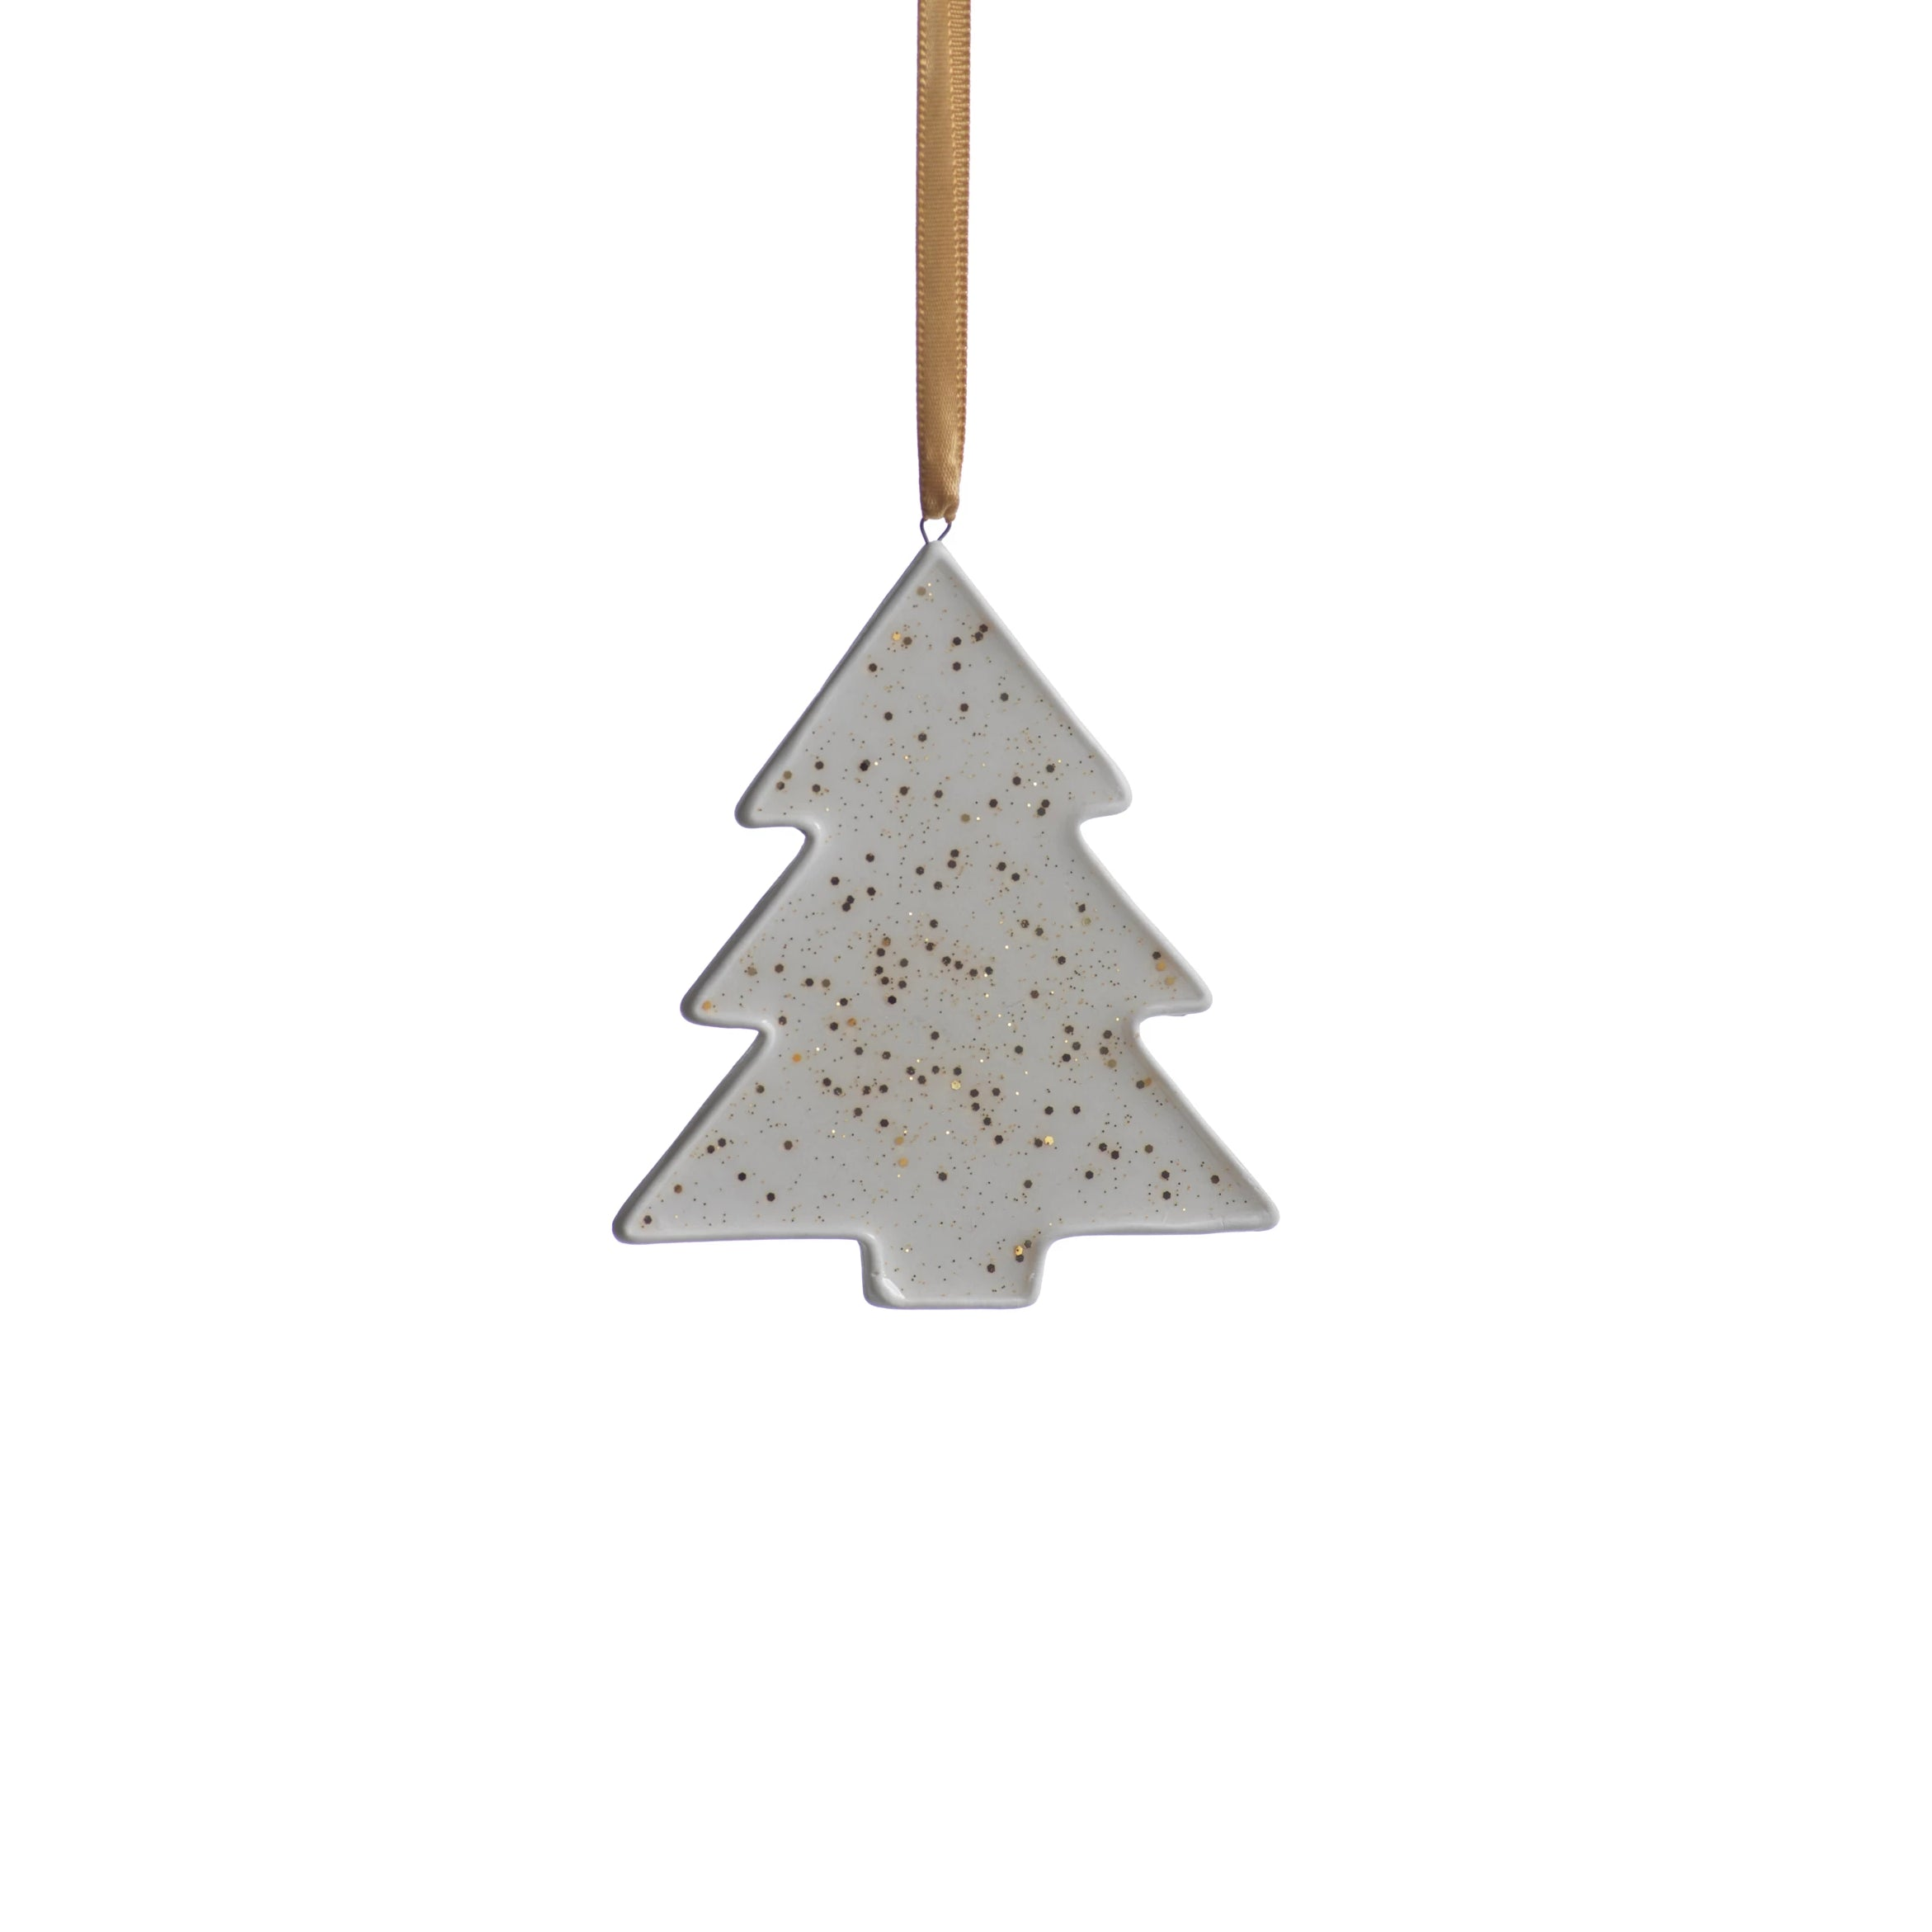 Speckled Tree Ornament - Gold - CARLYLE AVENUE